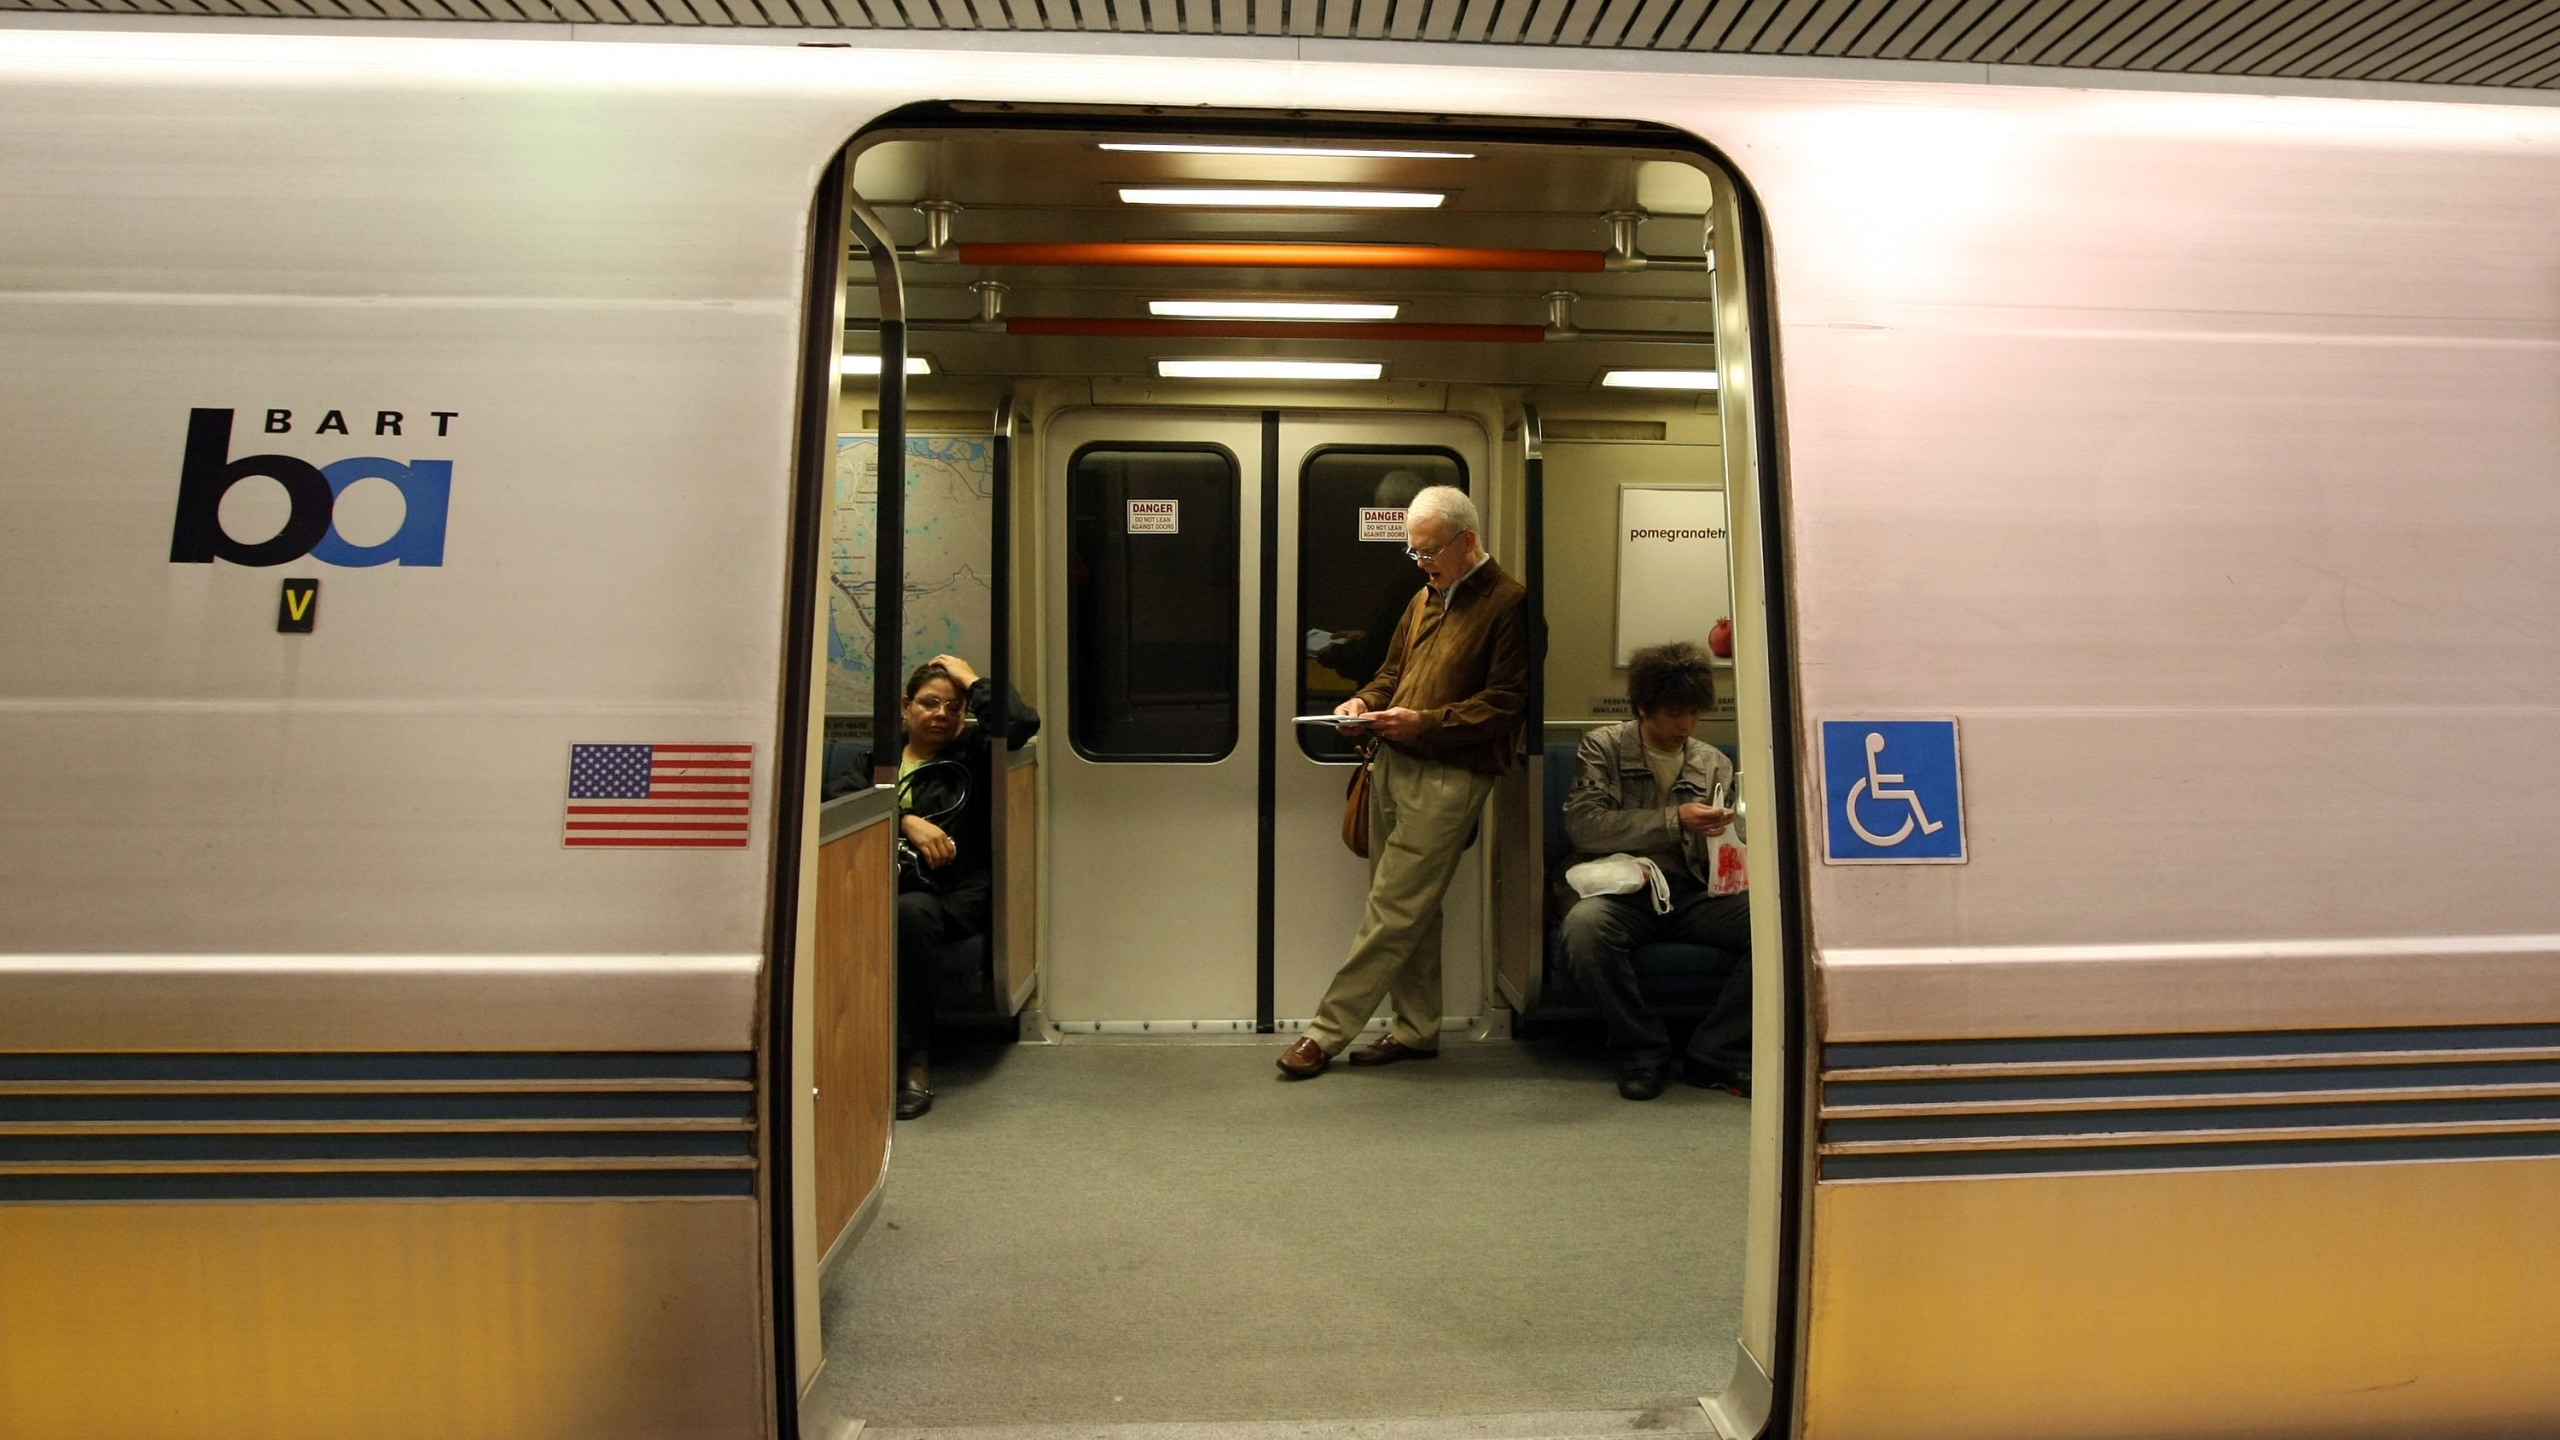 Bay Area Rapid Transit (BART) passengers wait onboard a train at the Powell Street station on May 12, 2008, in San Francisco, California.(Justin Sullivan/Getty Images)